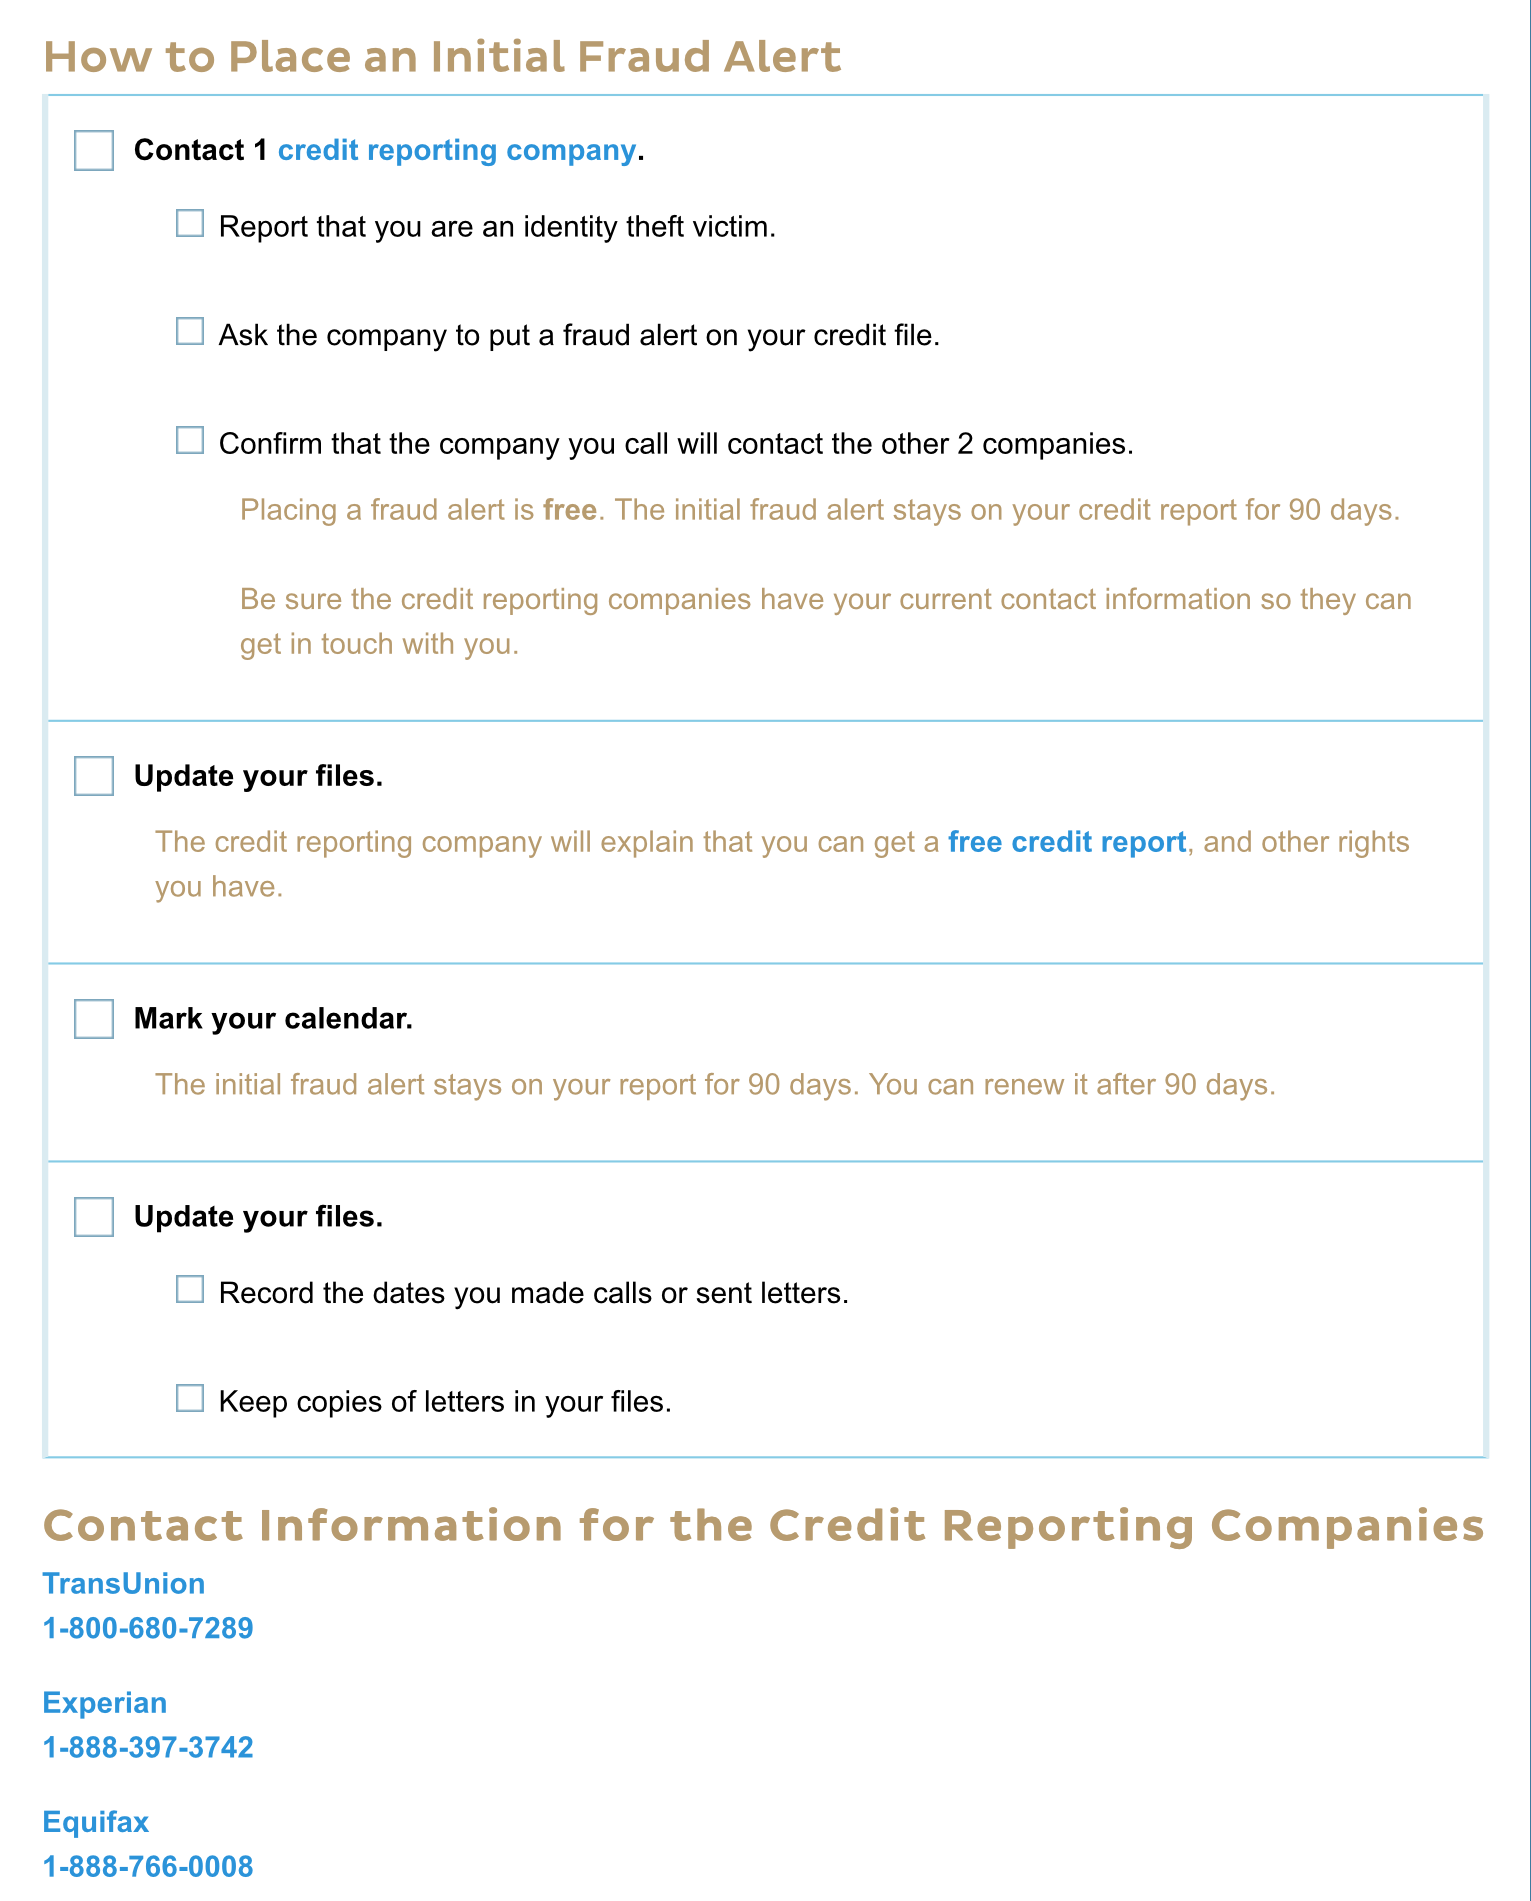 FTC Fraud Alert Screen (2)